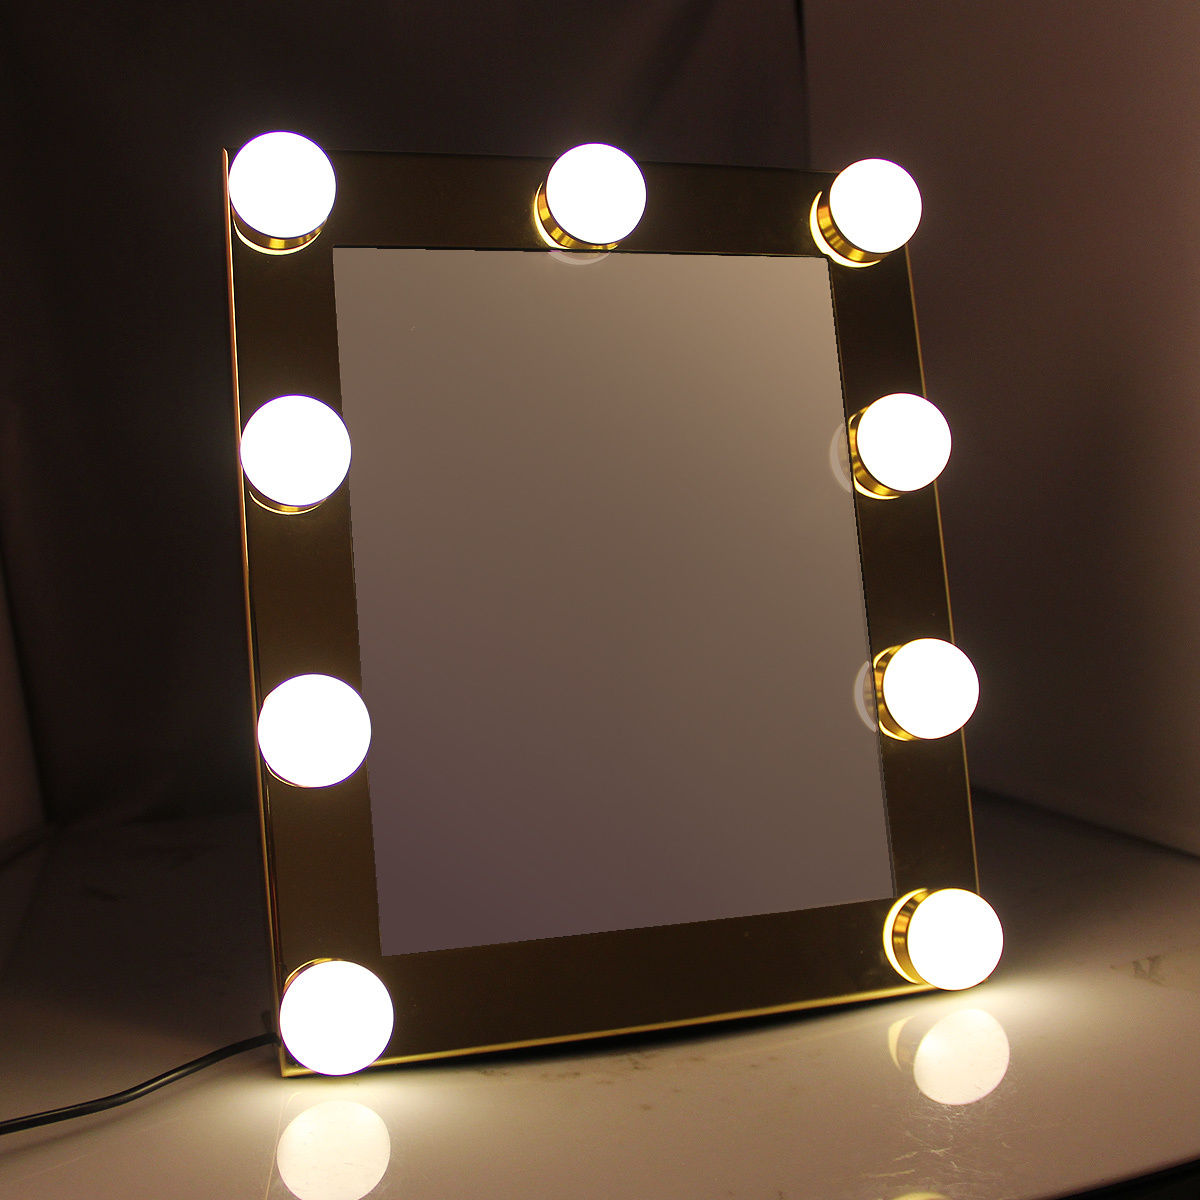 vanity tabletops lighted makeup mirror with 9 led bulb lights touch stage screen beauty mirror. Black Bedroom Furniture Sets. Home Design Ideas